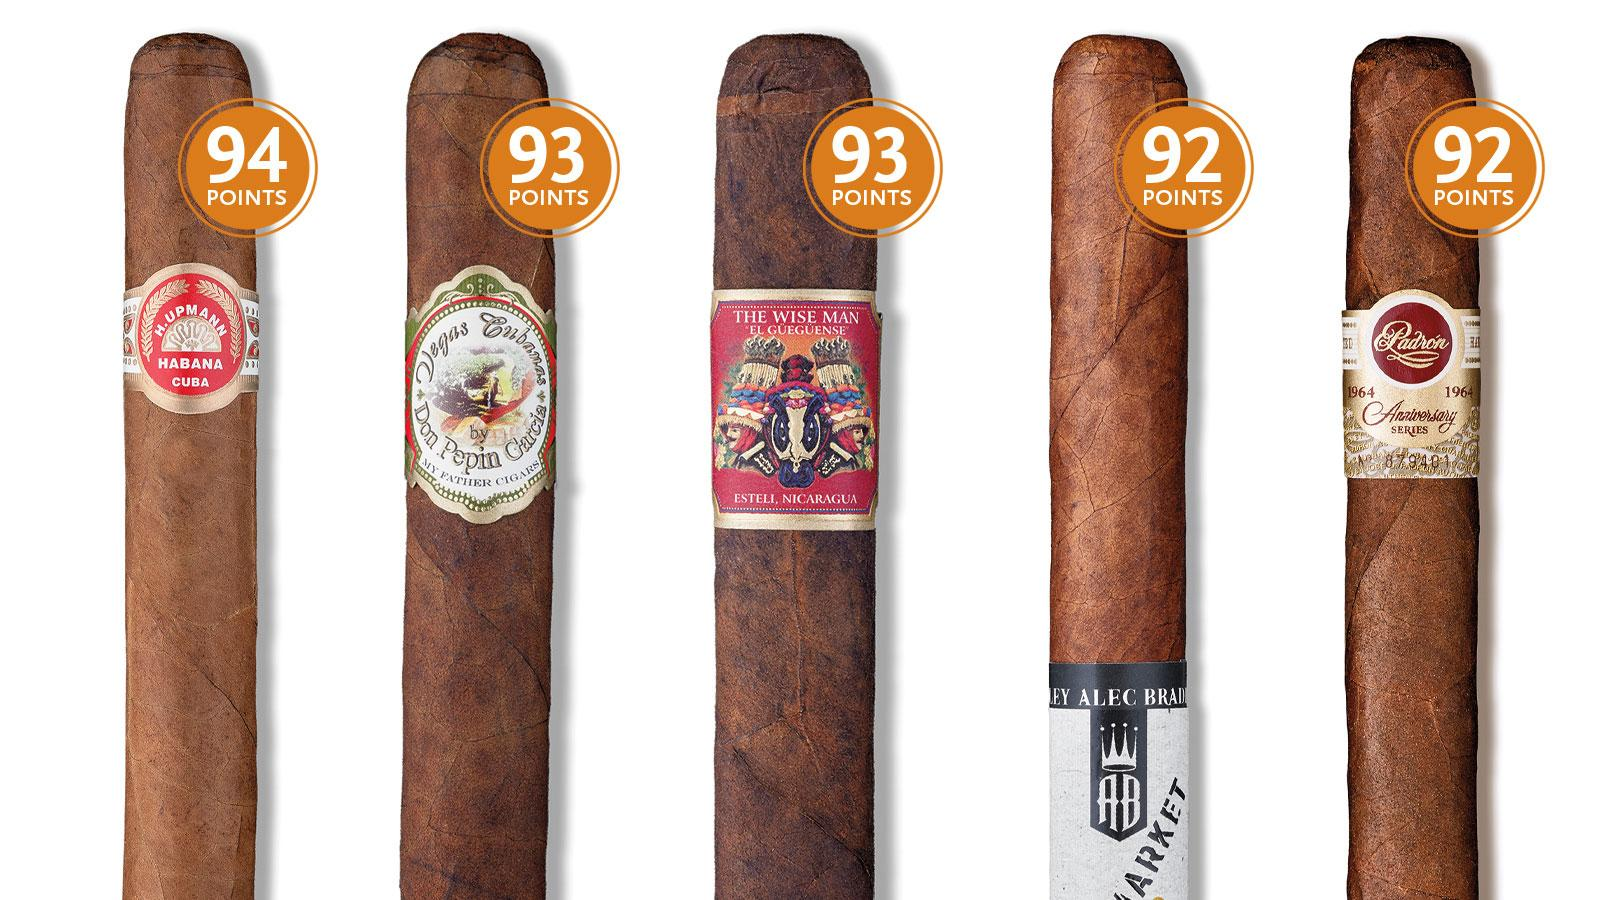 18 Outstanding Cigars You Should Add to Your Humidor Now